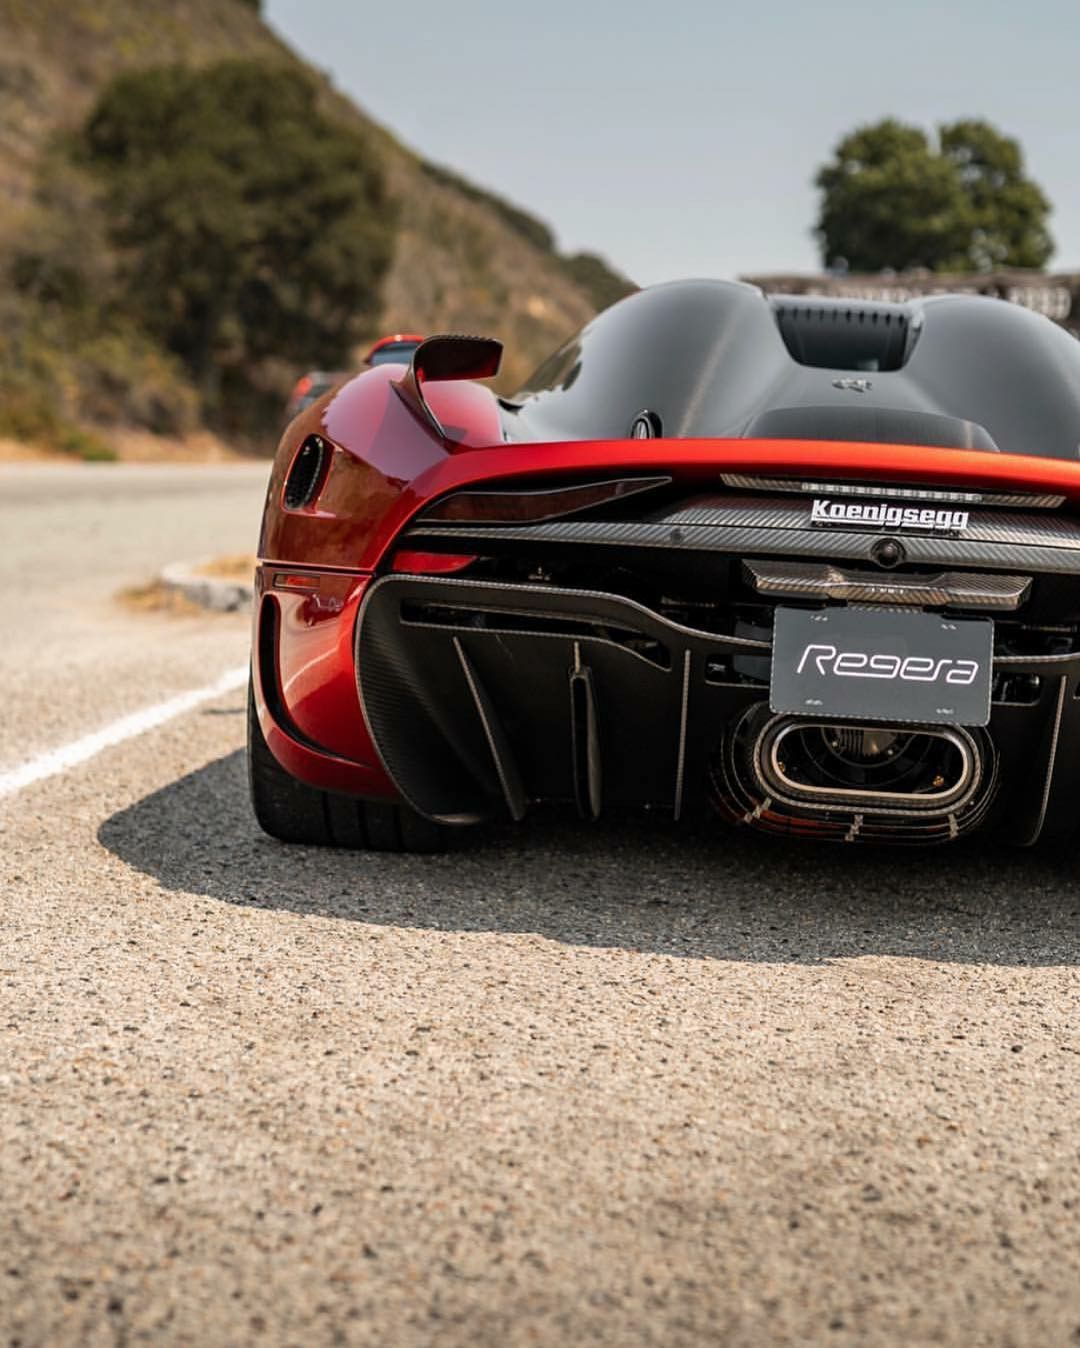 Exotic Sports Cars Koenigsegg: Super Cars, Sports Cars Luxury